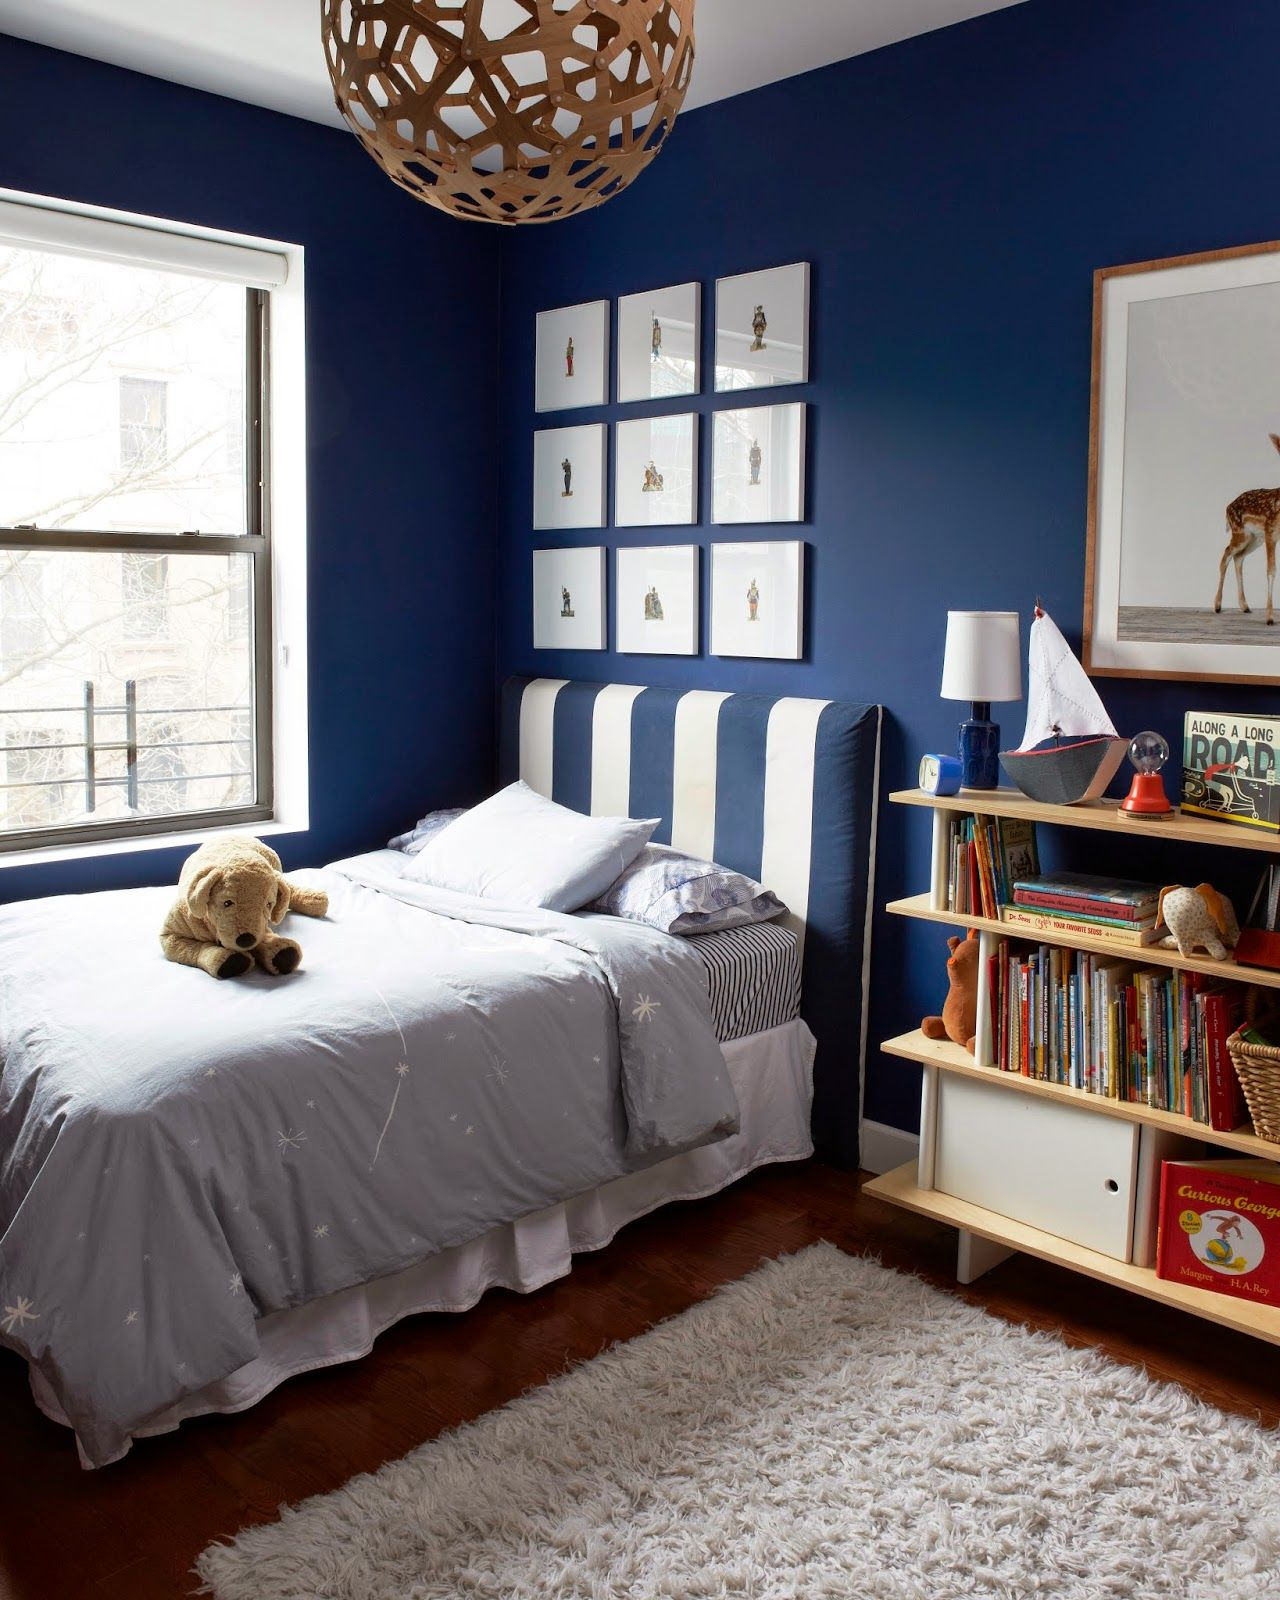 Help which bedroom paint color would you choose drf - Blue bedroom paint ideas ...